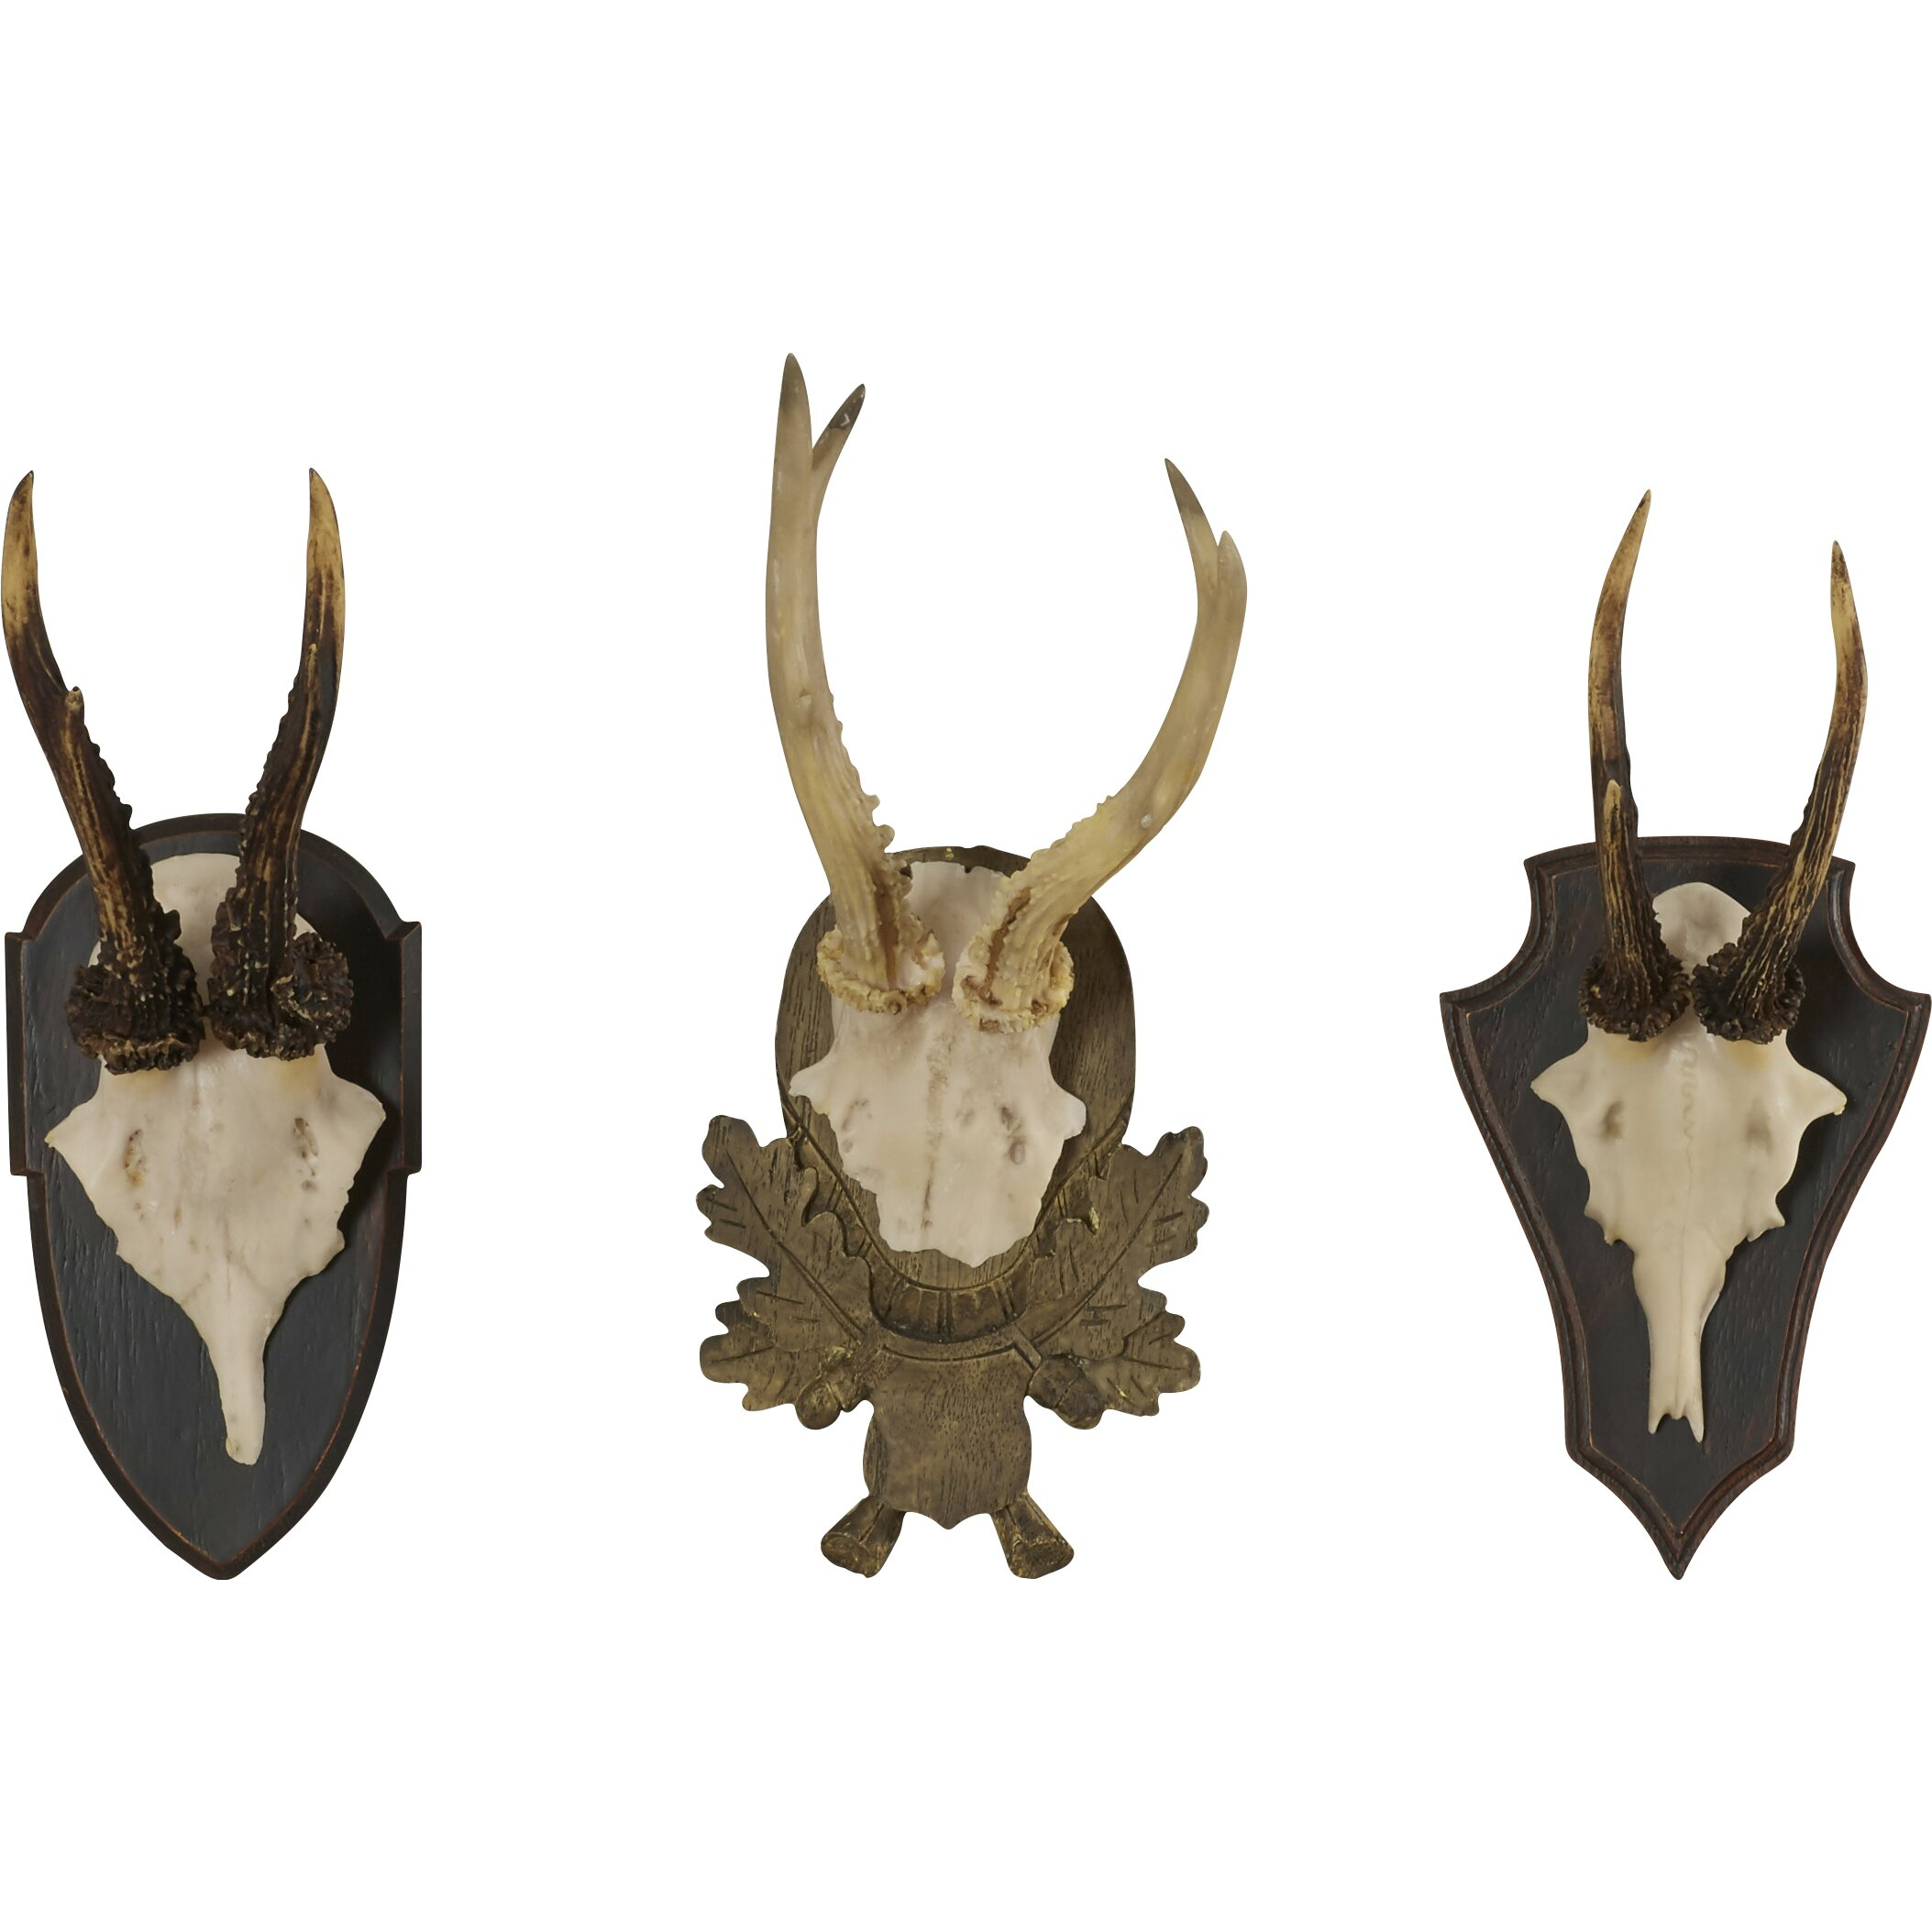 Antler Wall Decor Loon Peak Orient 3 Piece Antler Trophy Wall Decor Set